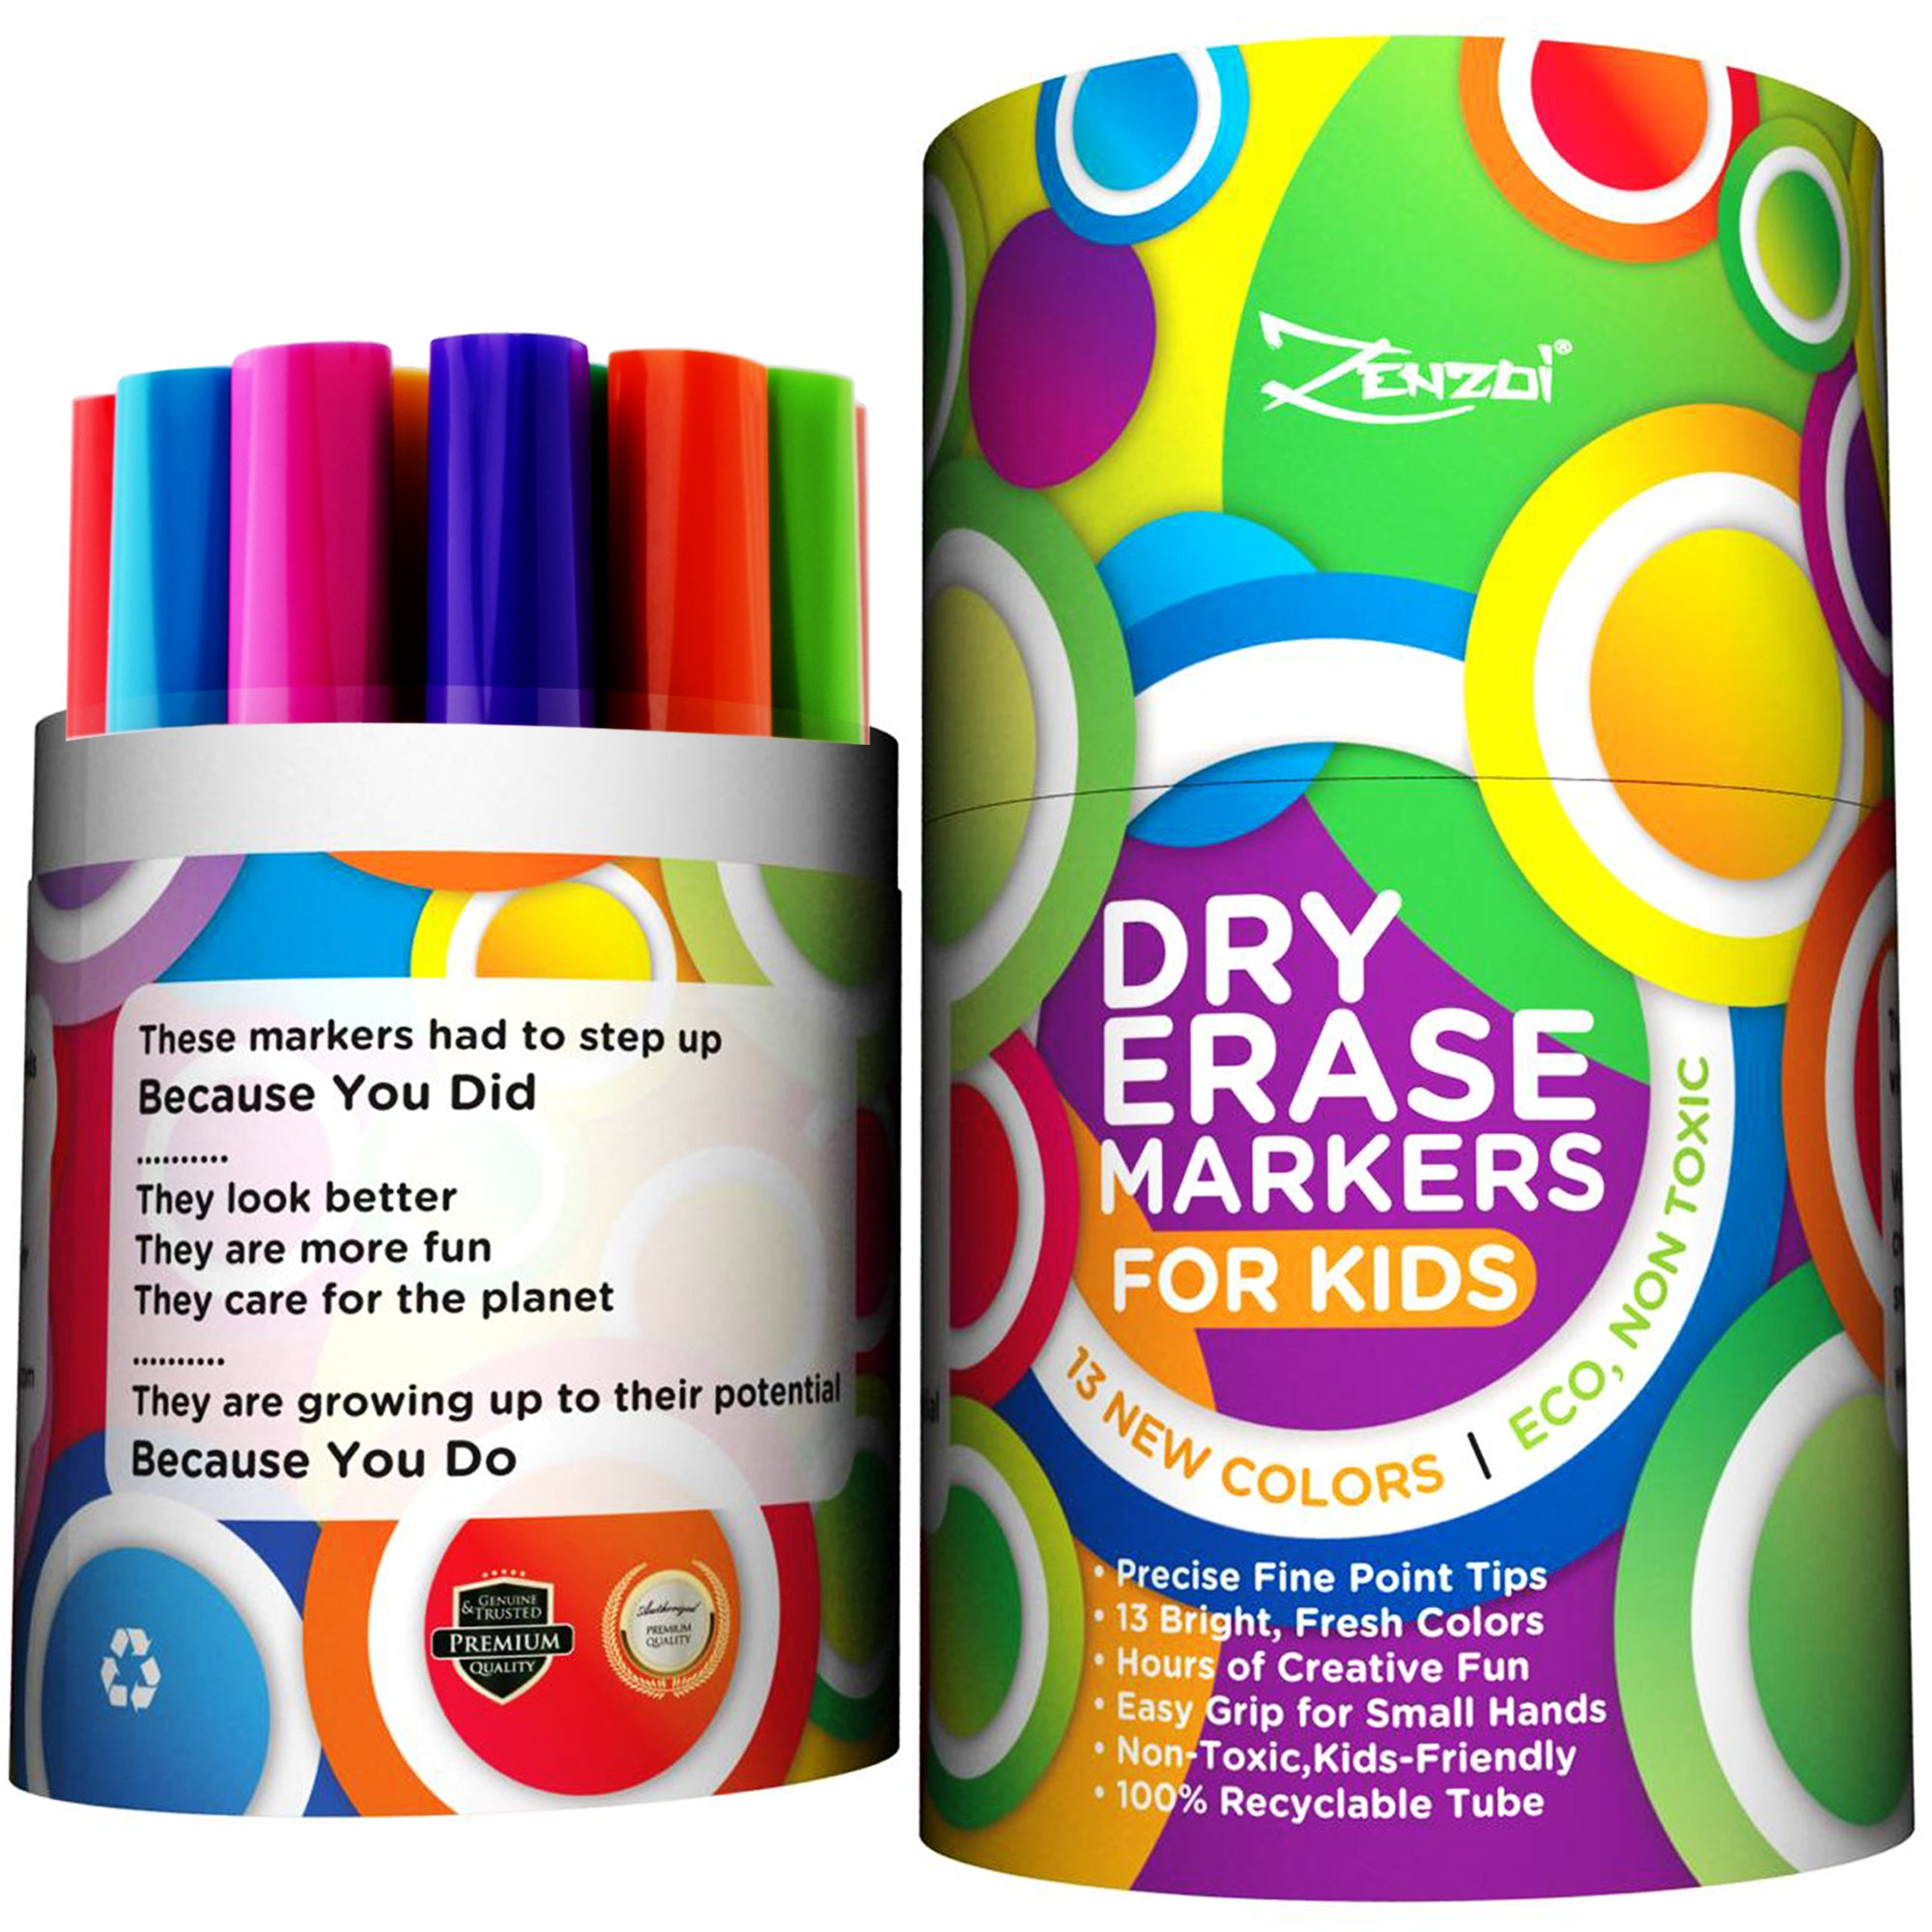 Dry Erase Markers for Kids Whiteboard Erasable Marker Pens Set Fine Tip Point - Eco Pen Pack with 13 Unique, Bright Colors -You Get FREE Gift eBook- For White Board Calendar Children School Supplies